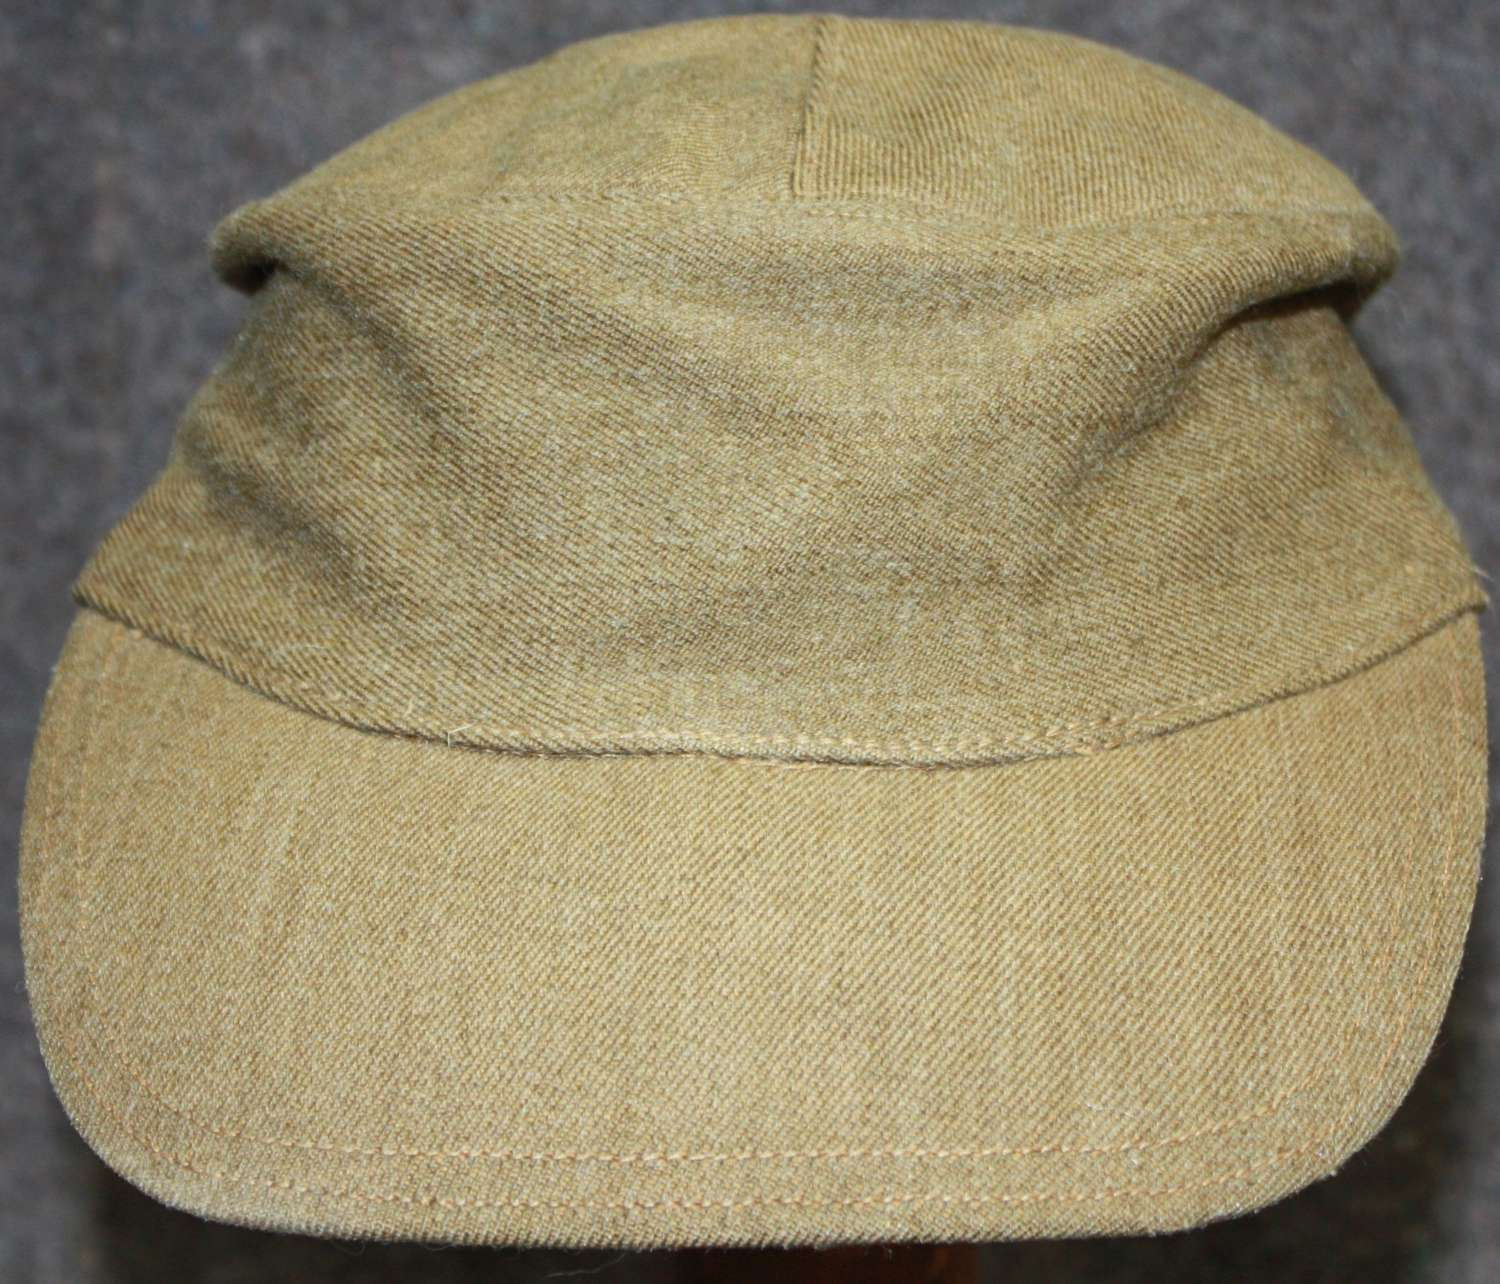 A GOOD WWII BRITISH ARMY MOUNTAIN TROOP CAP WHICH IS 1943 DATED